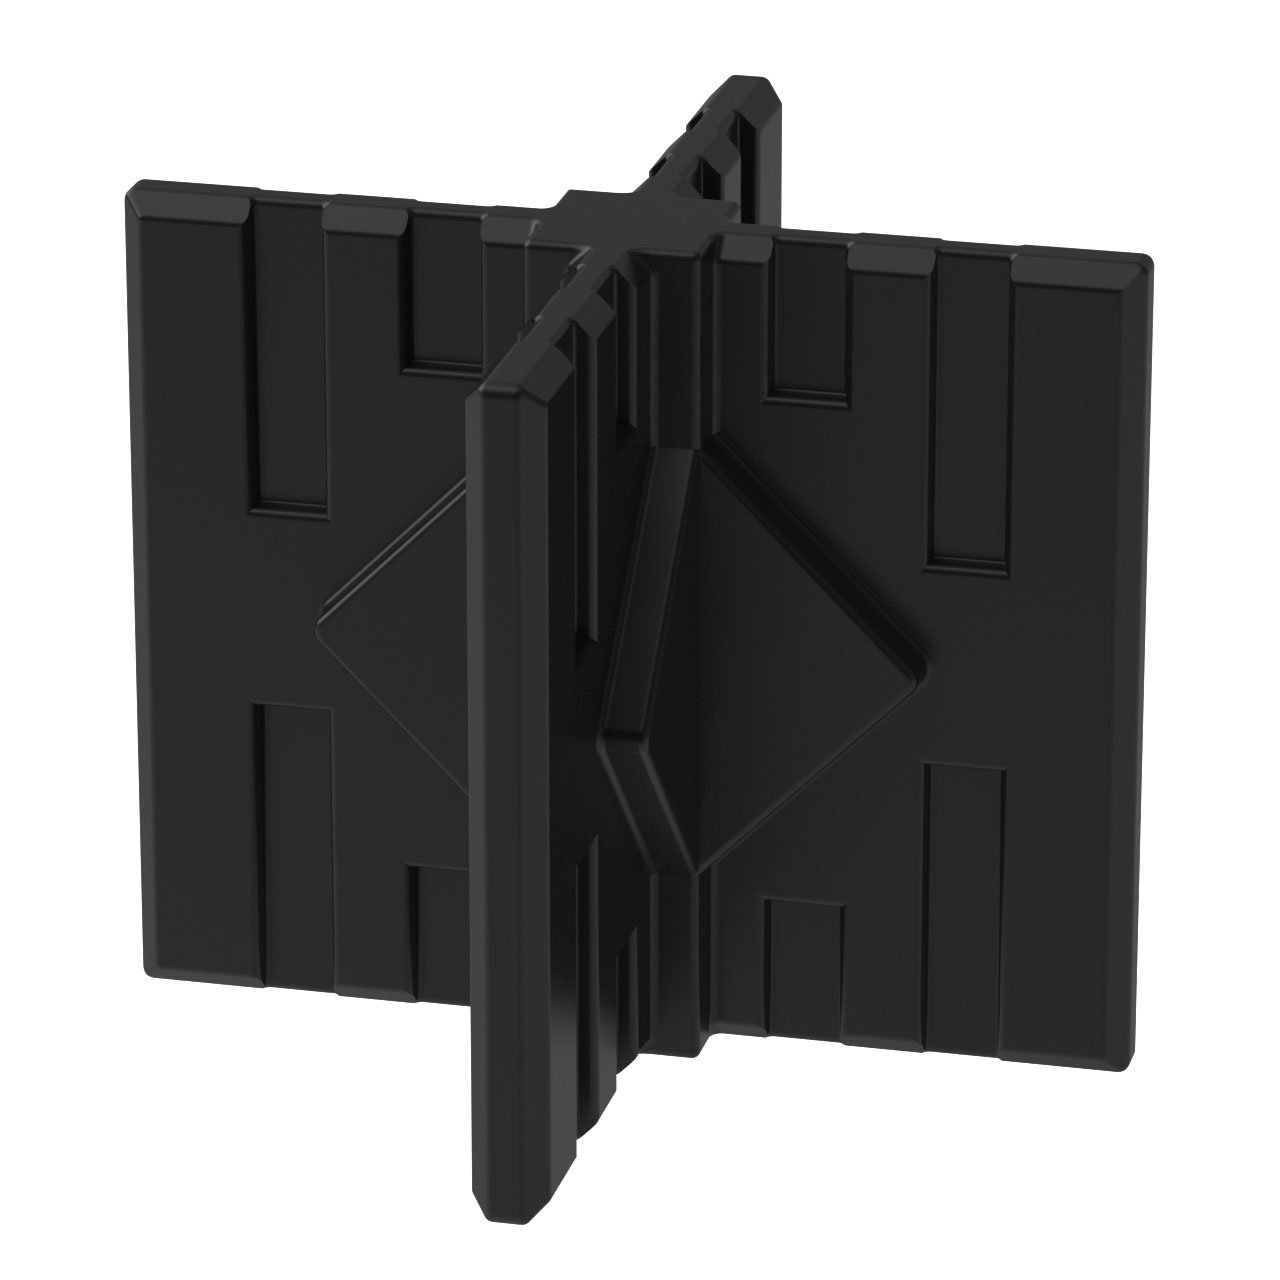 GOGO Panels - CX1B - Black Middle/Foot 4-Way Connector